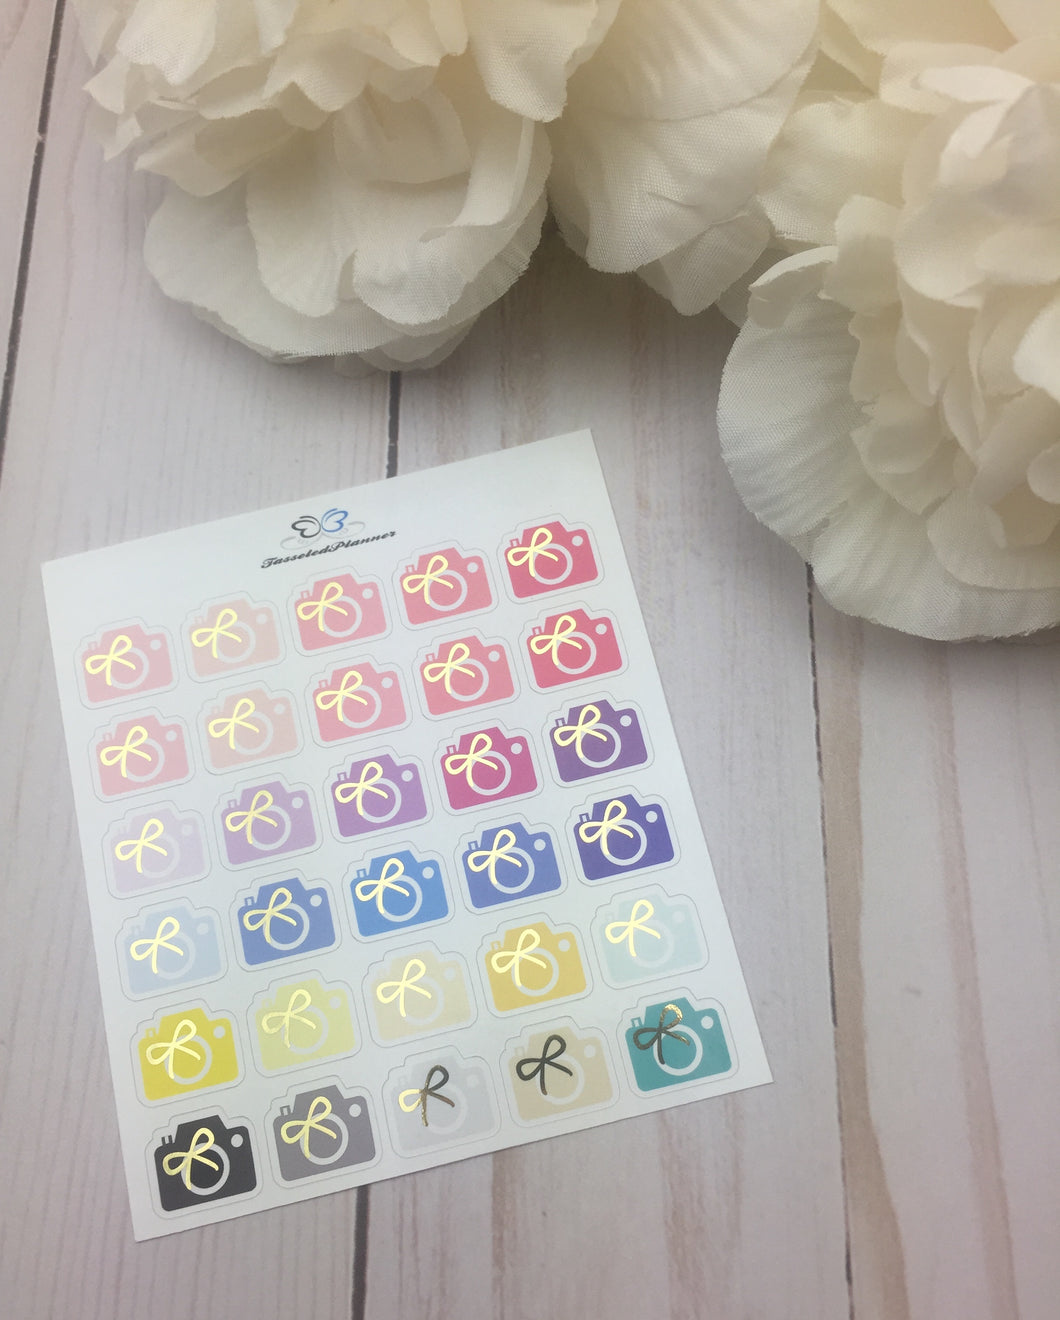 Foil Camera With Bows Planner Stickers | Foiled Planner Stickers | Planner Stickers